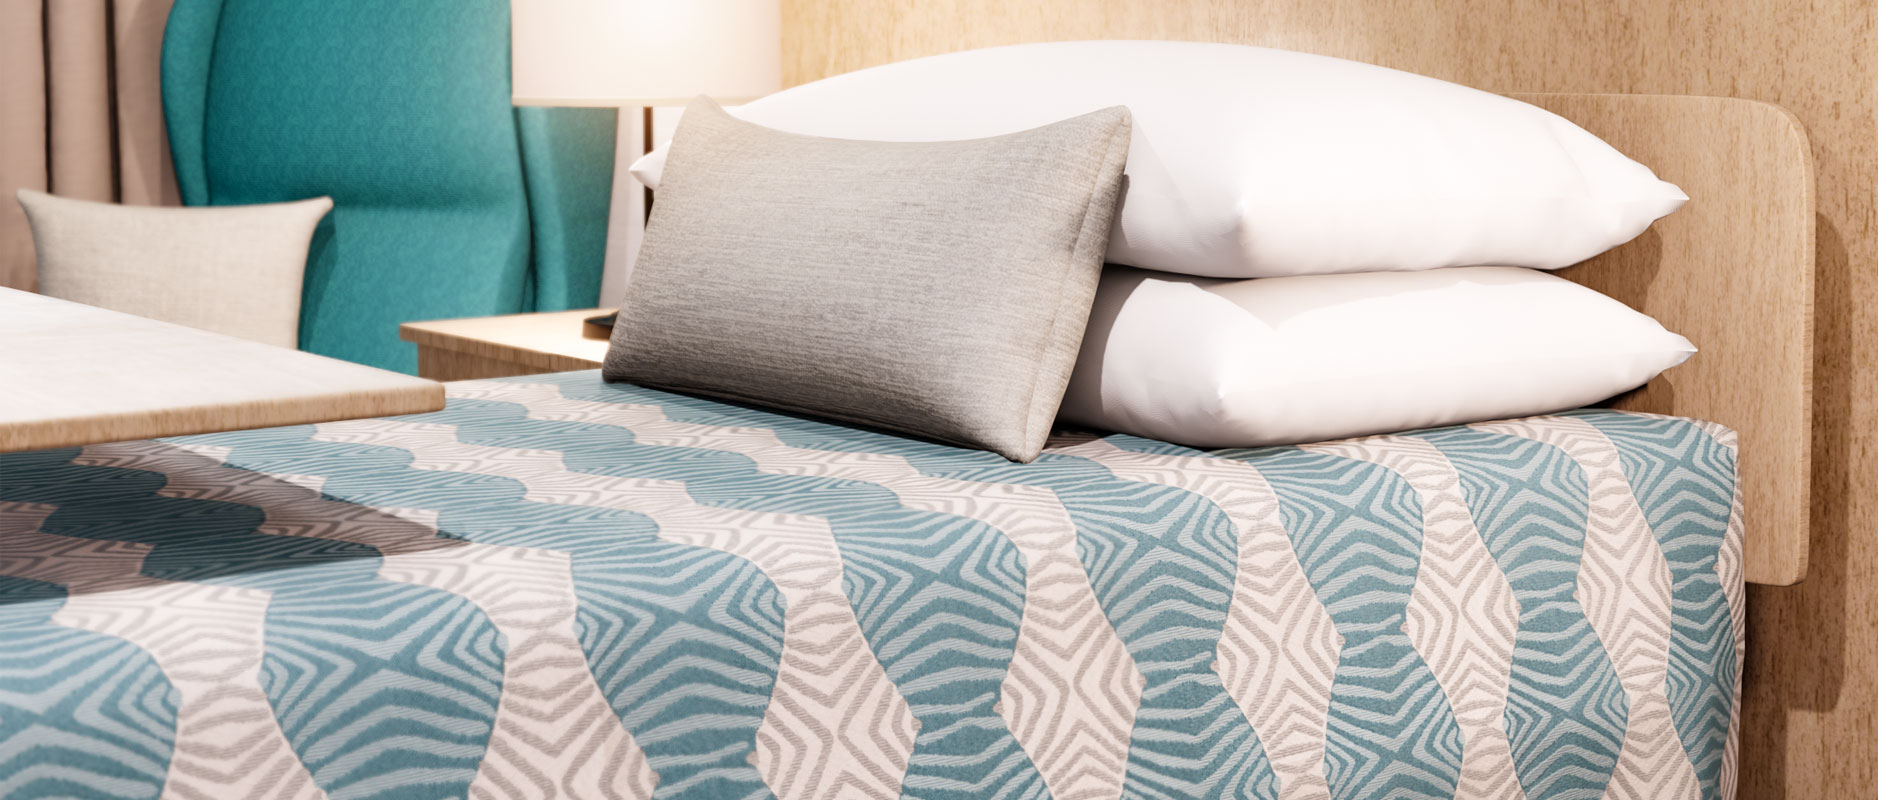 Practical Health Bed Cover by HotelHome